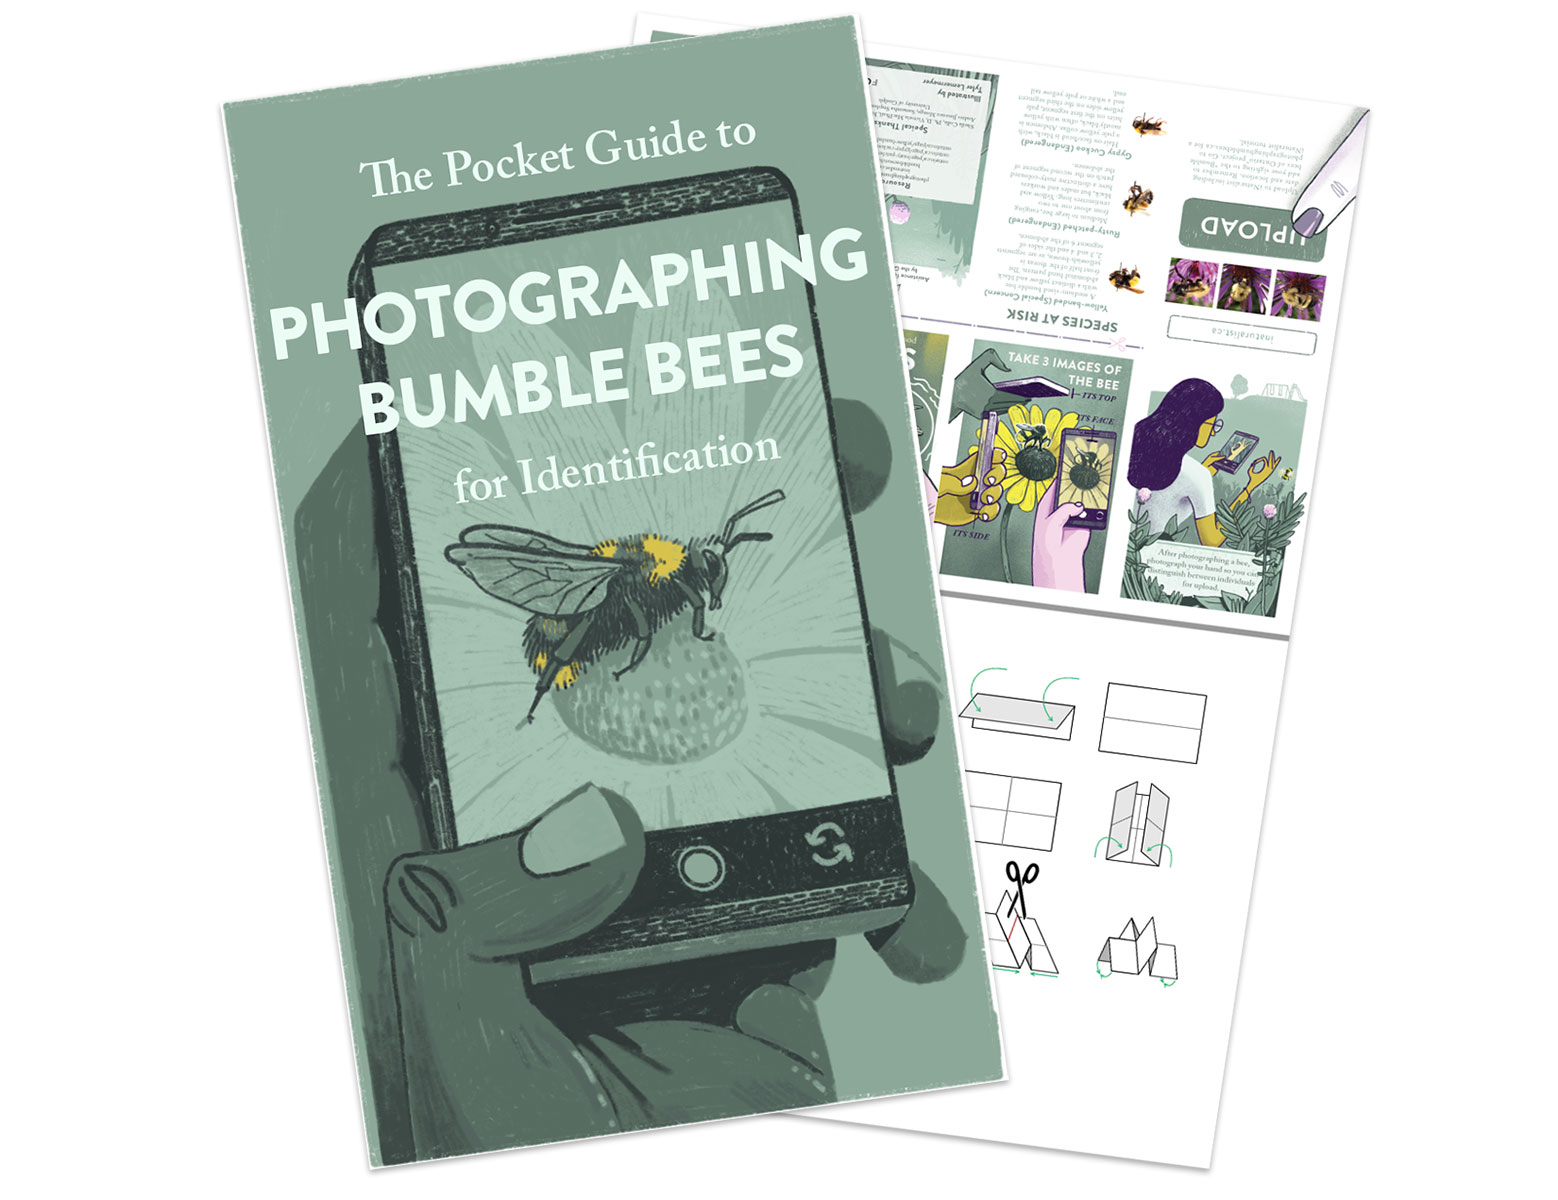 Photographing Bumble Bees Pocket Guide